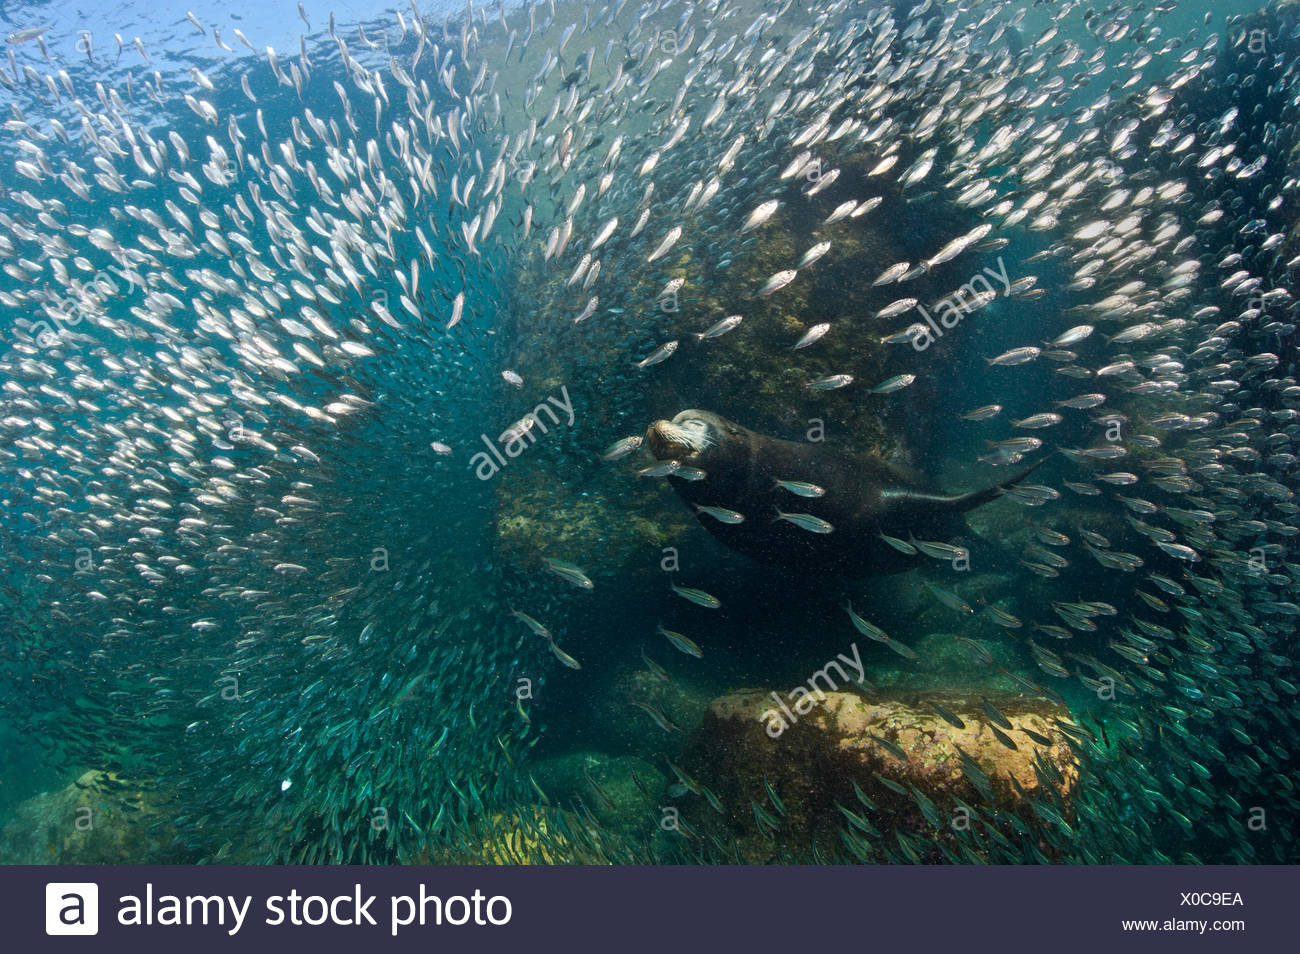 A bull California sealion (Zalophus californianus) bursting through a school of baitfish in the shallows. Los Isotes, La Paz, Mexico. Sea of Cortez, East Pacific Ocean. - Stock Image